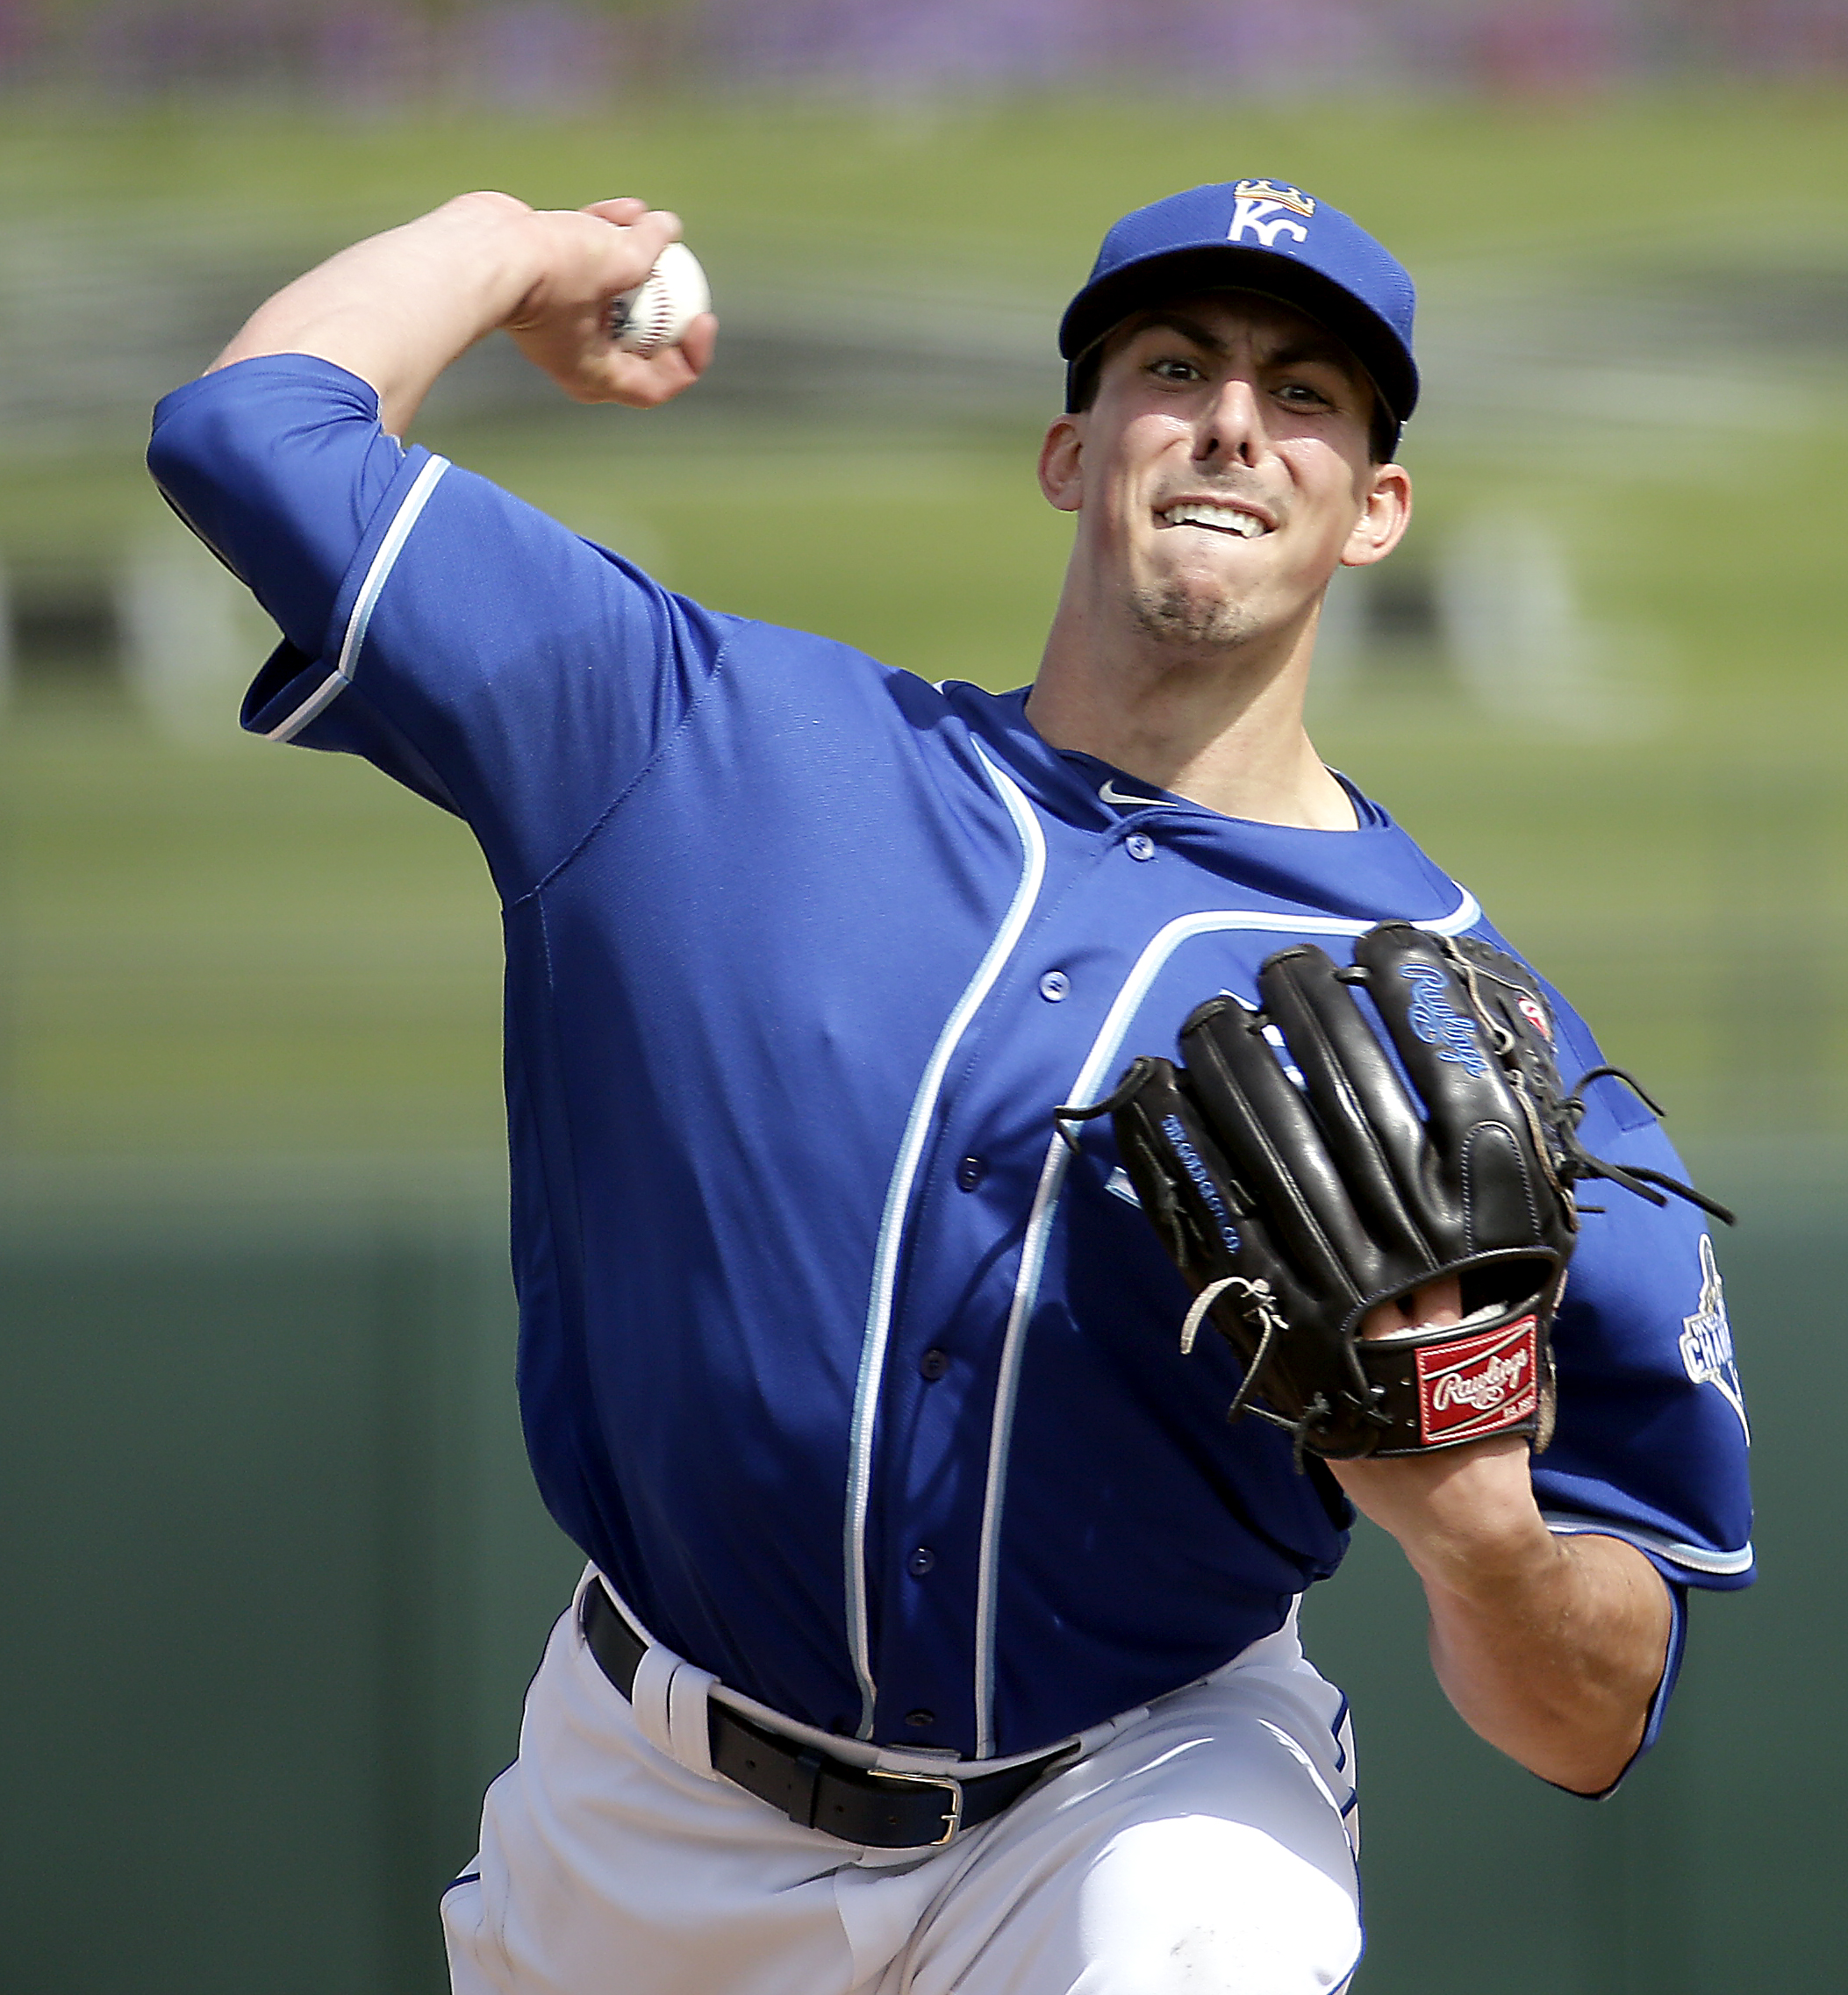 FILE - In this March 2, 2016, file photo, Kansas City Royals starting pitcher Kyle Zimmer throws during the first inning of a spring training baseball game against the Texas Rangers, in Surprise, Ariz.  While he has little shot of making the opening day r